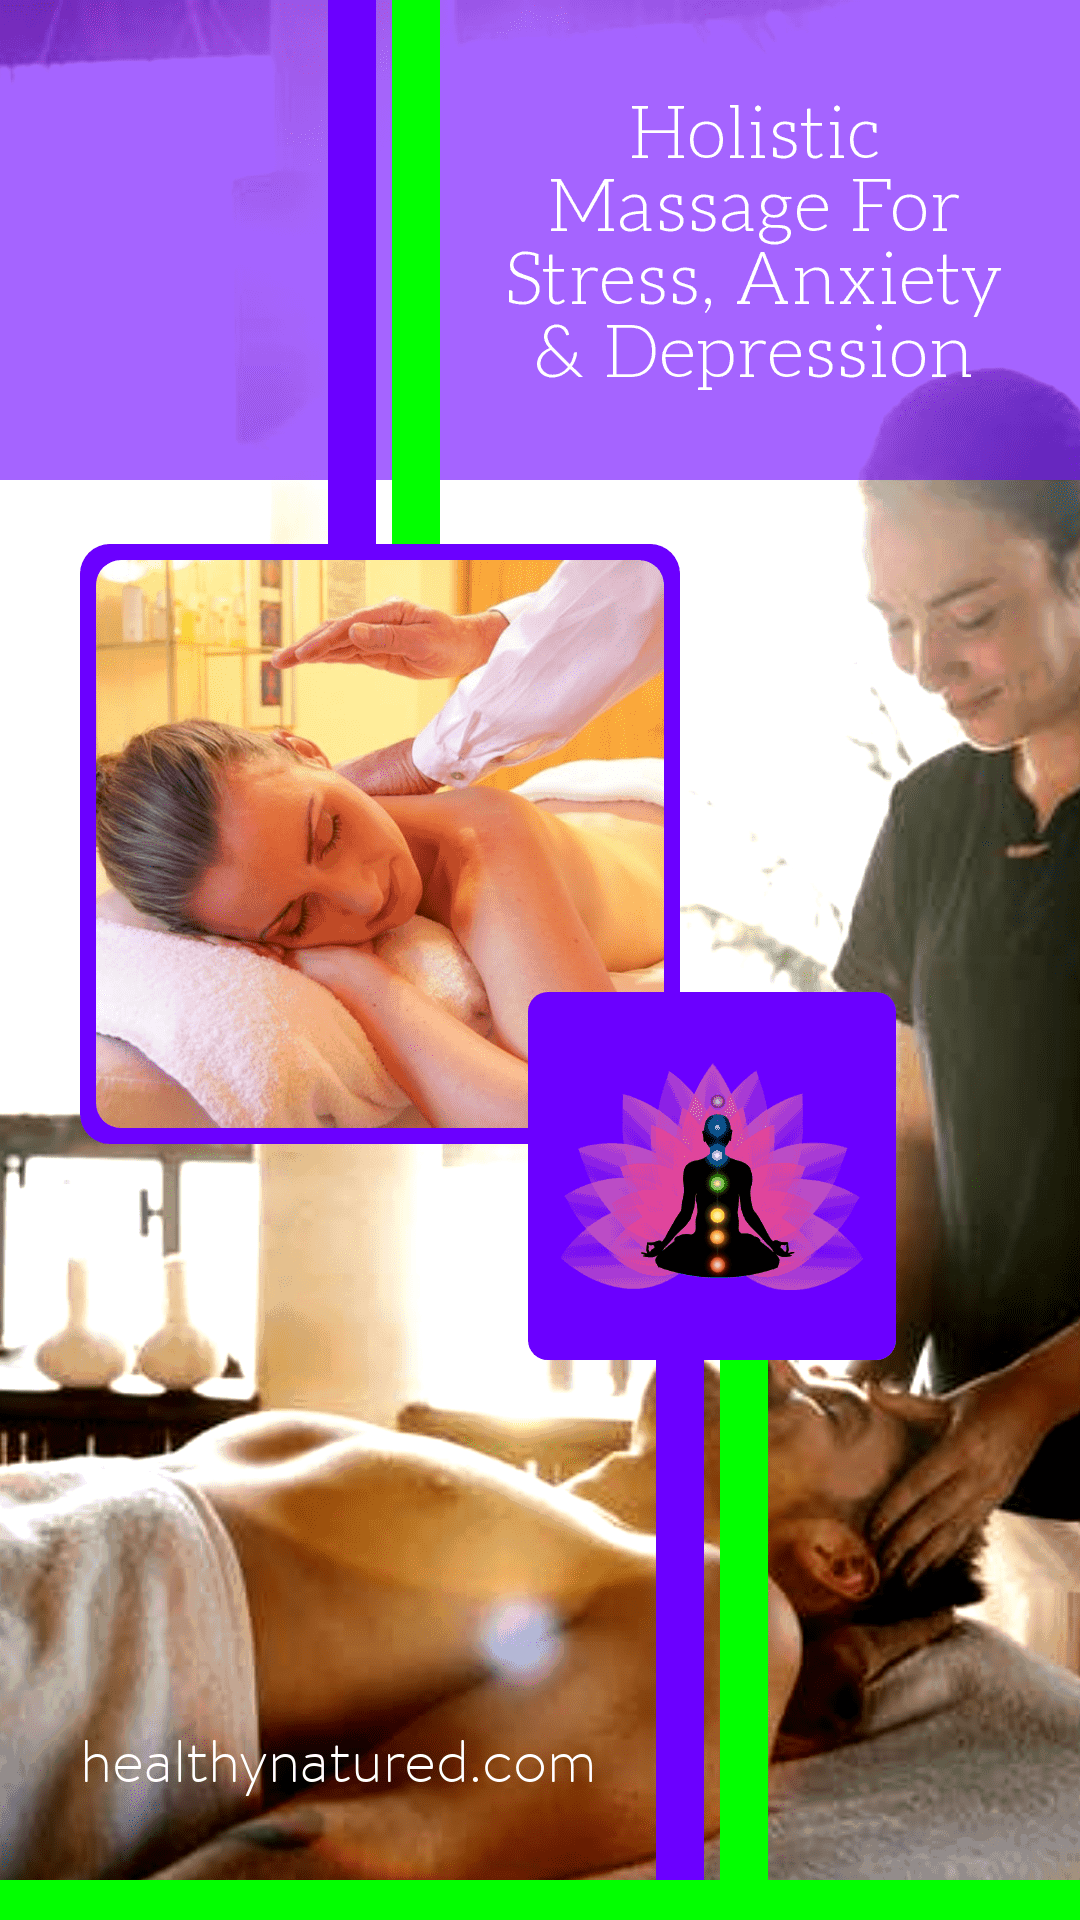 If you have ever searched for natural methods to treat anxiety and stress you will find a myriad of suggestions.  This post focuses on holistic massage, a safe and proven treatment which is effective in significantly reducing the symptoms of stress and anxiety.